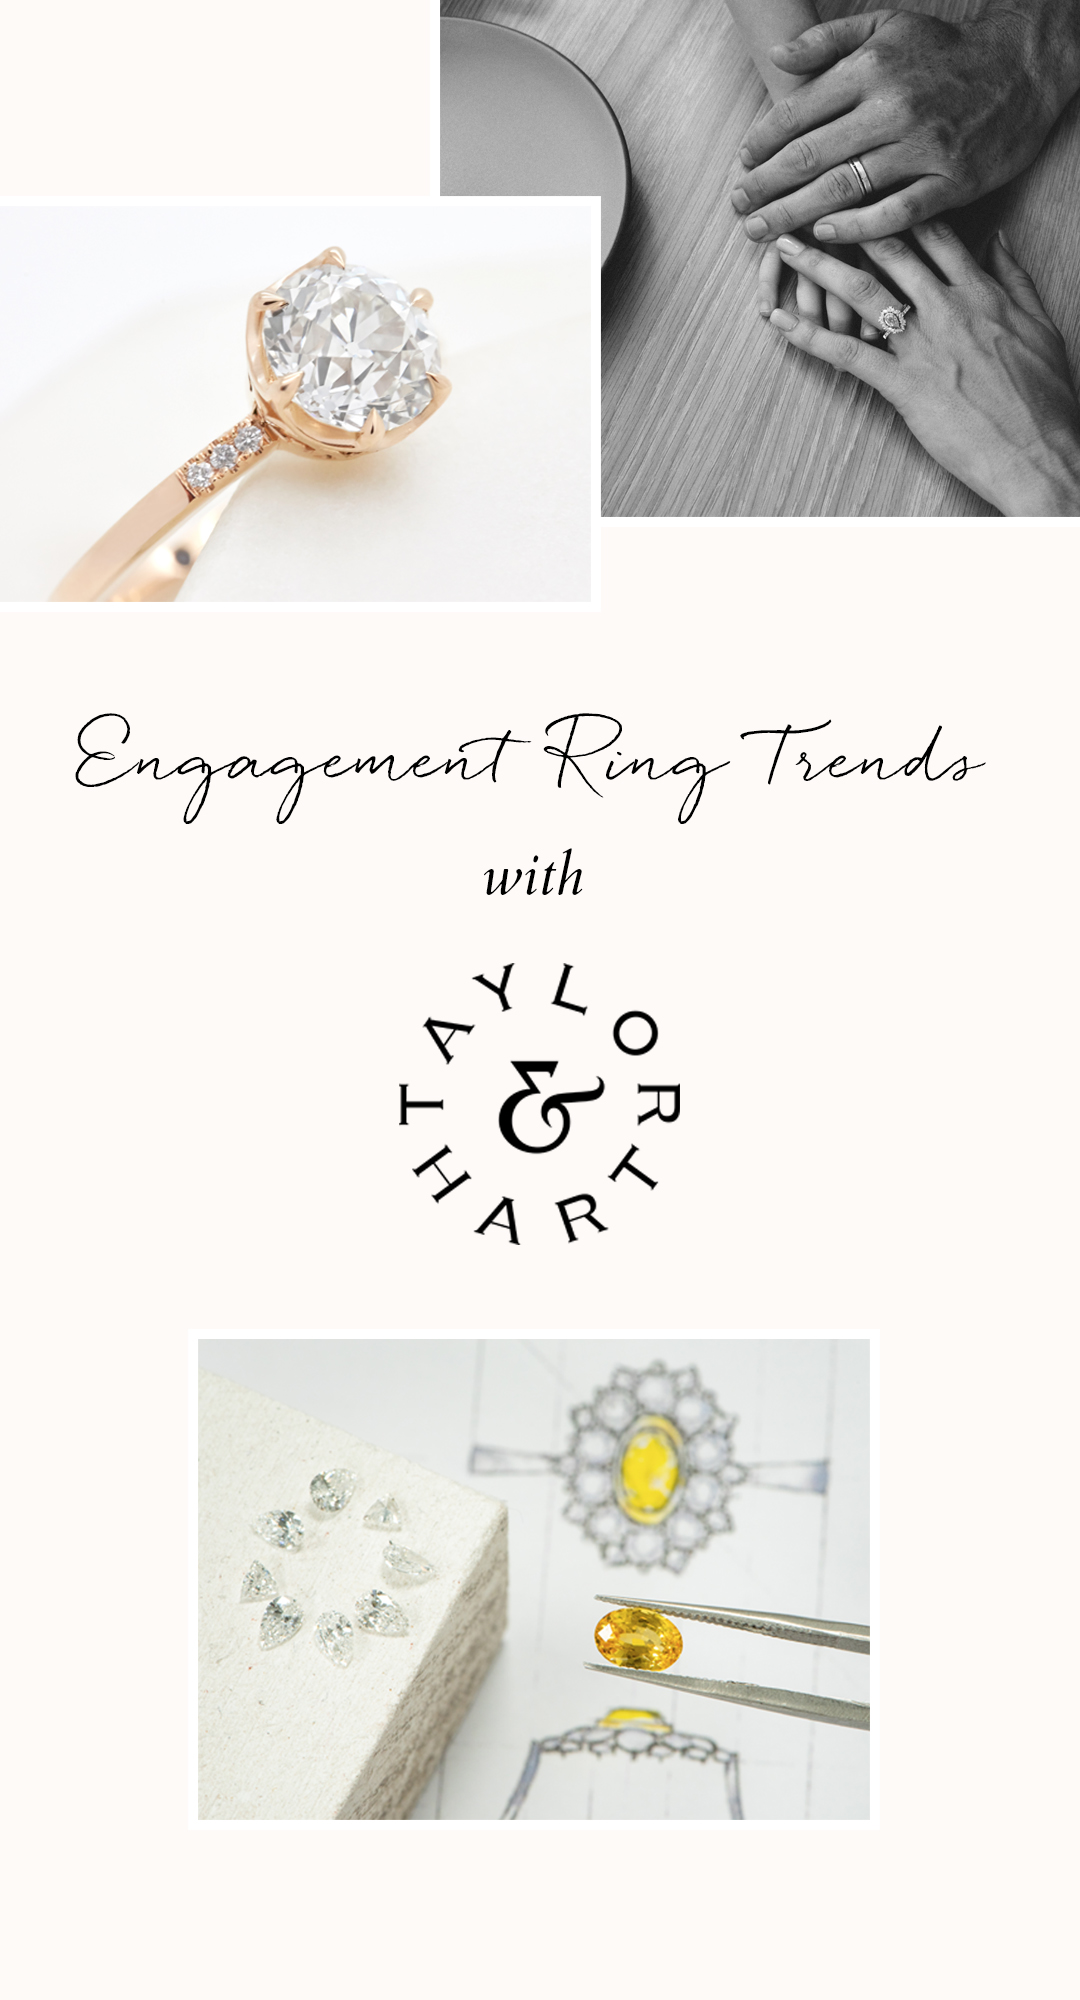 Top engagement ring trends in 2020 by Taylor & Hart